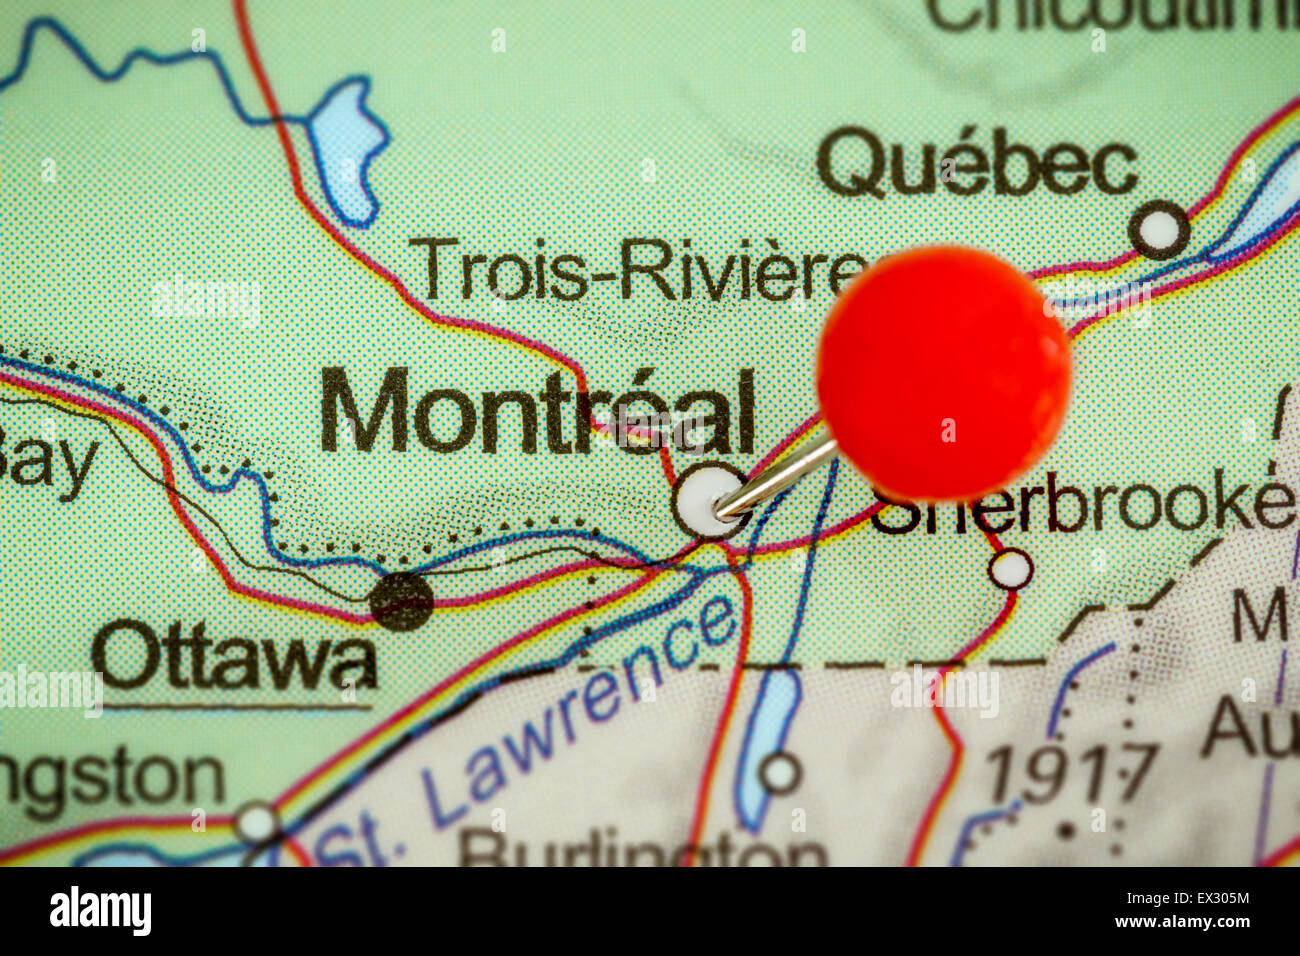 Canada Map Montreal.Close Up Of A Red Pushpin On A Map Of Montreal Canada Stock Photo